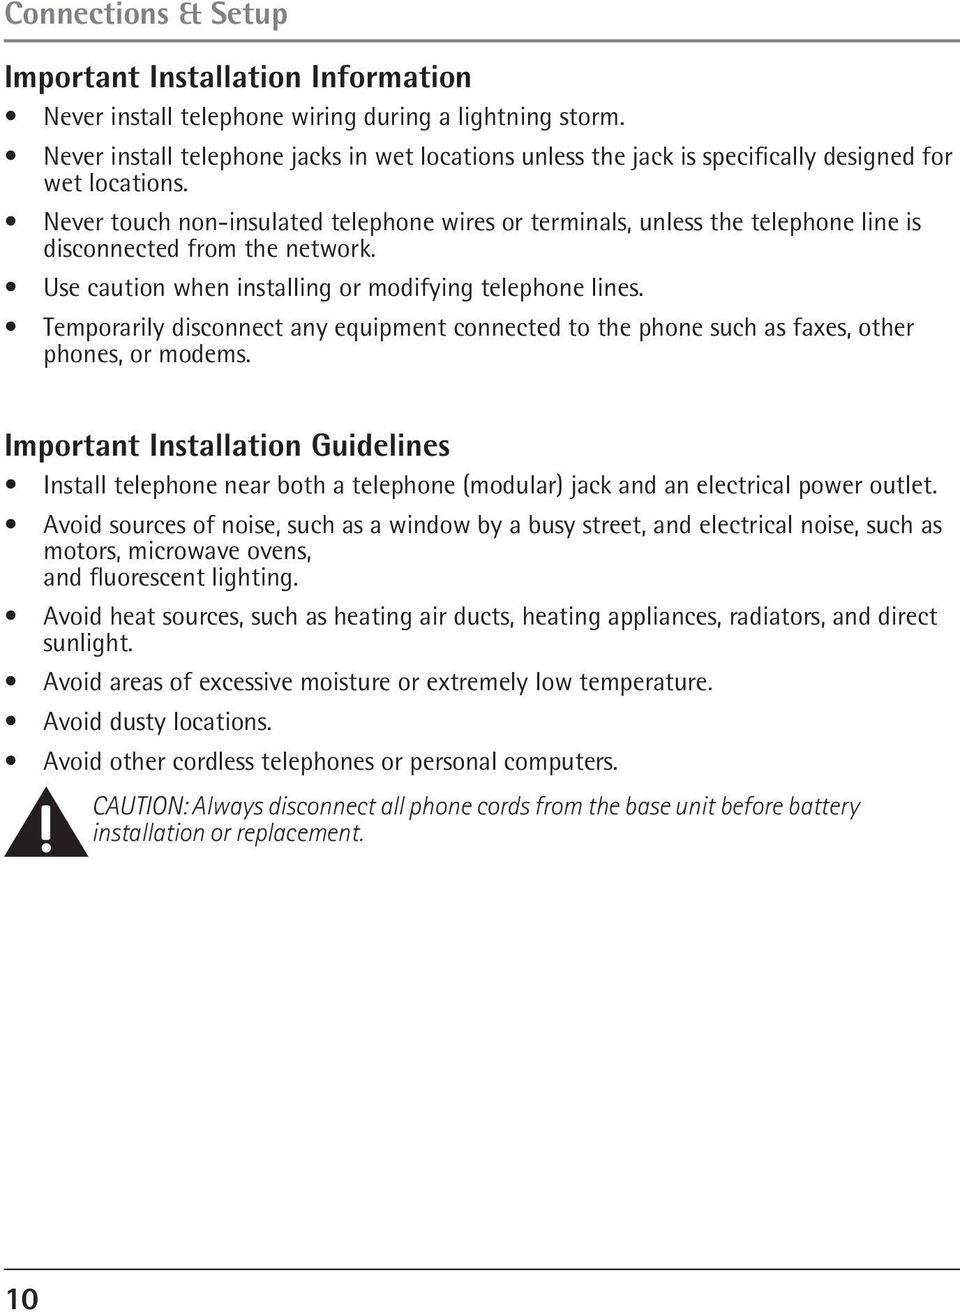 Model 25423 24 4 Line Intercom Speakerphone User S Guide Quick How To Connect Telephone Wires Never Touch Non Insulated Or Terminals Unless The Is Disconnected 11 Connections